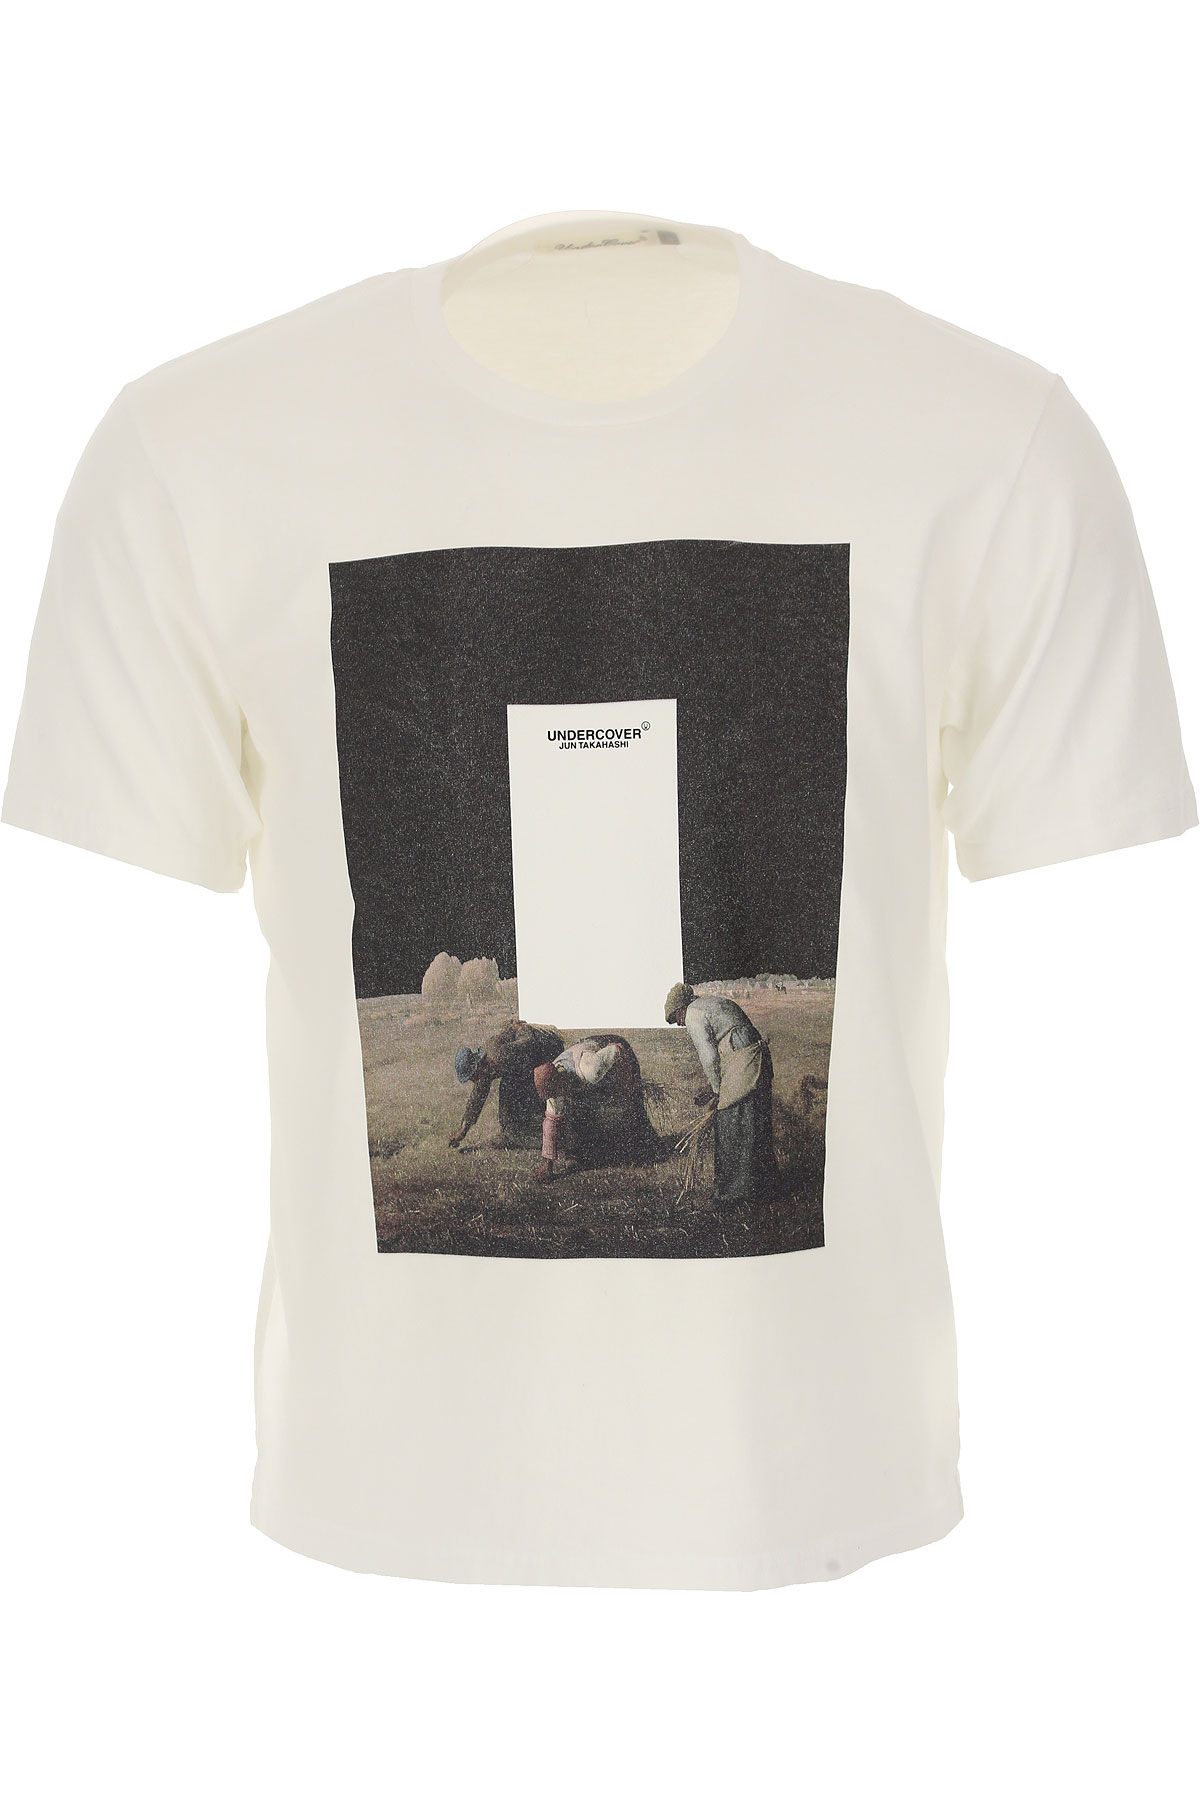 Image of Undercover T-Shirt for Men, White, Cotton, 2017, L M S